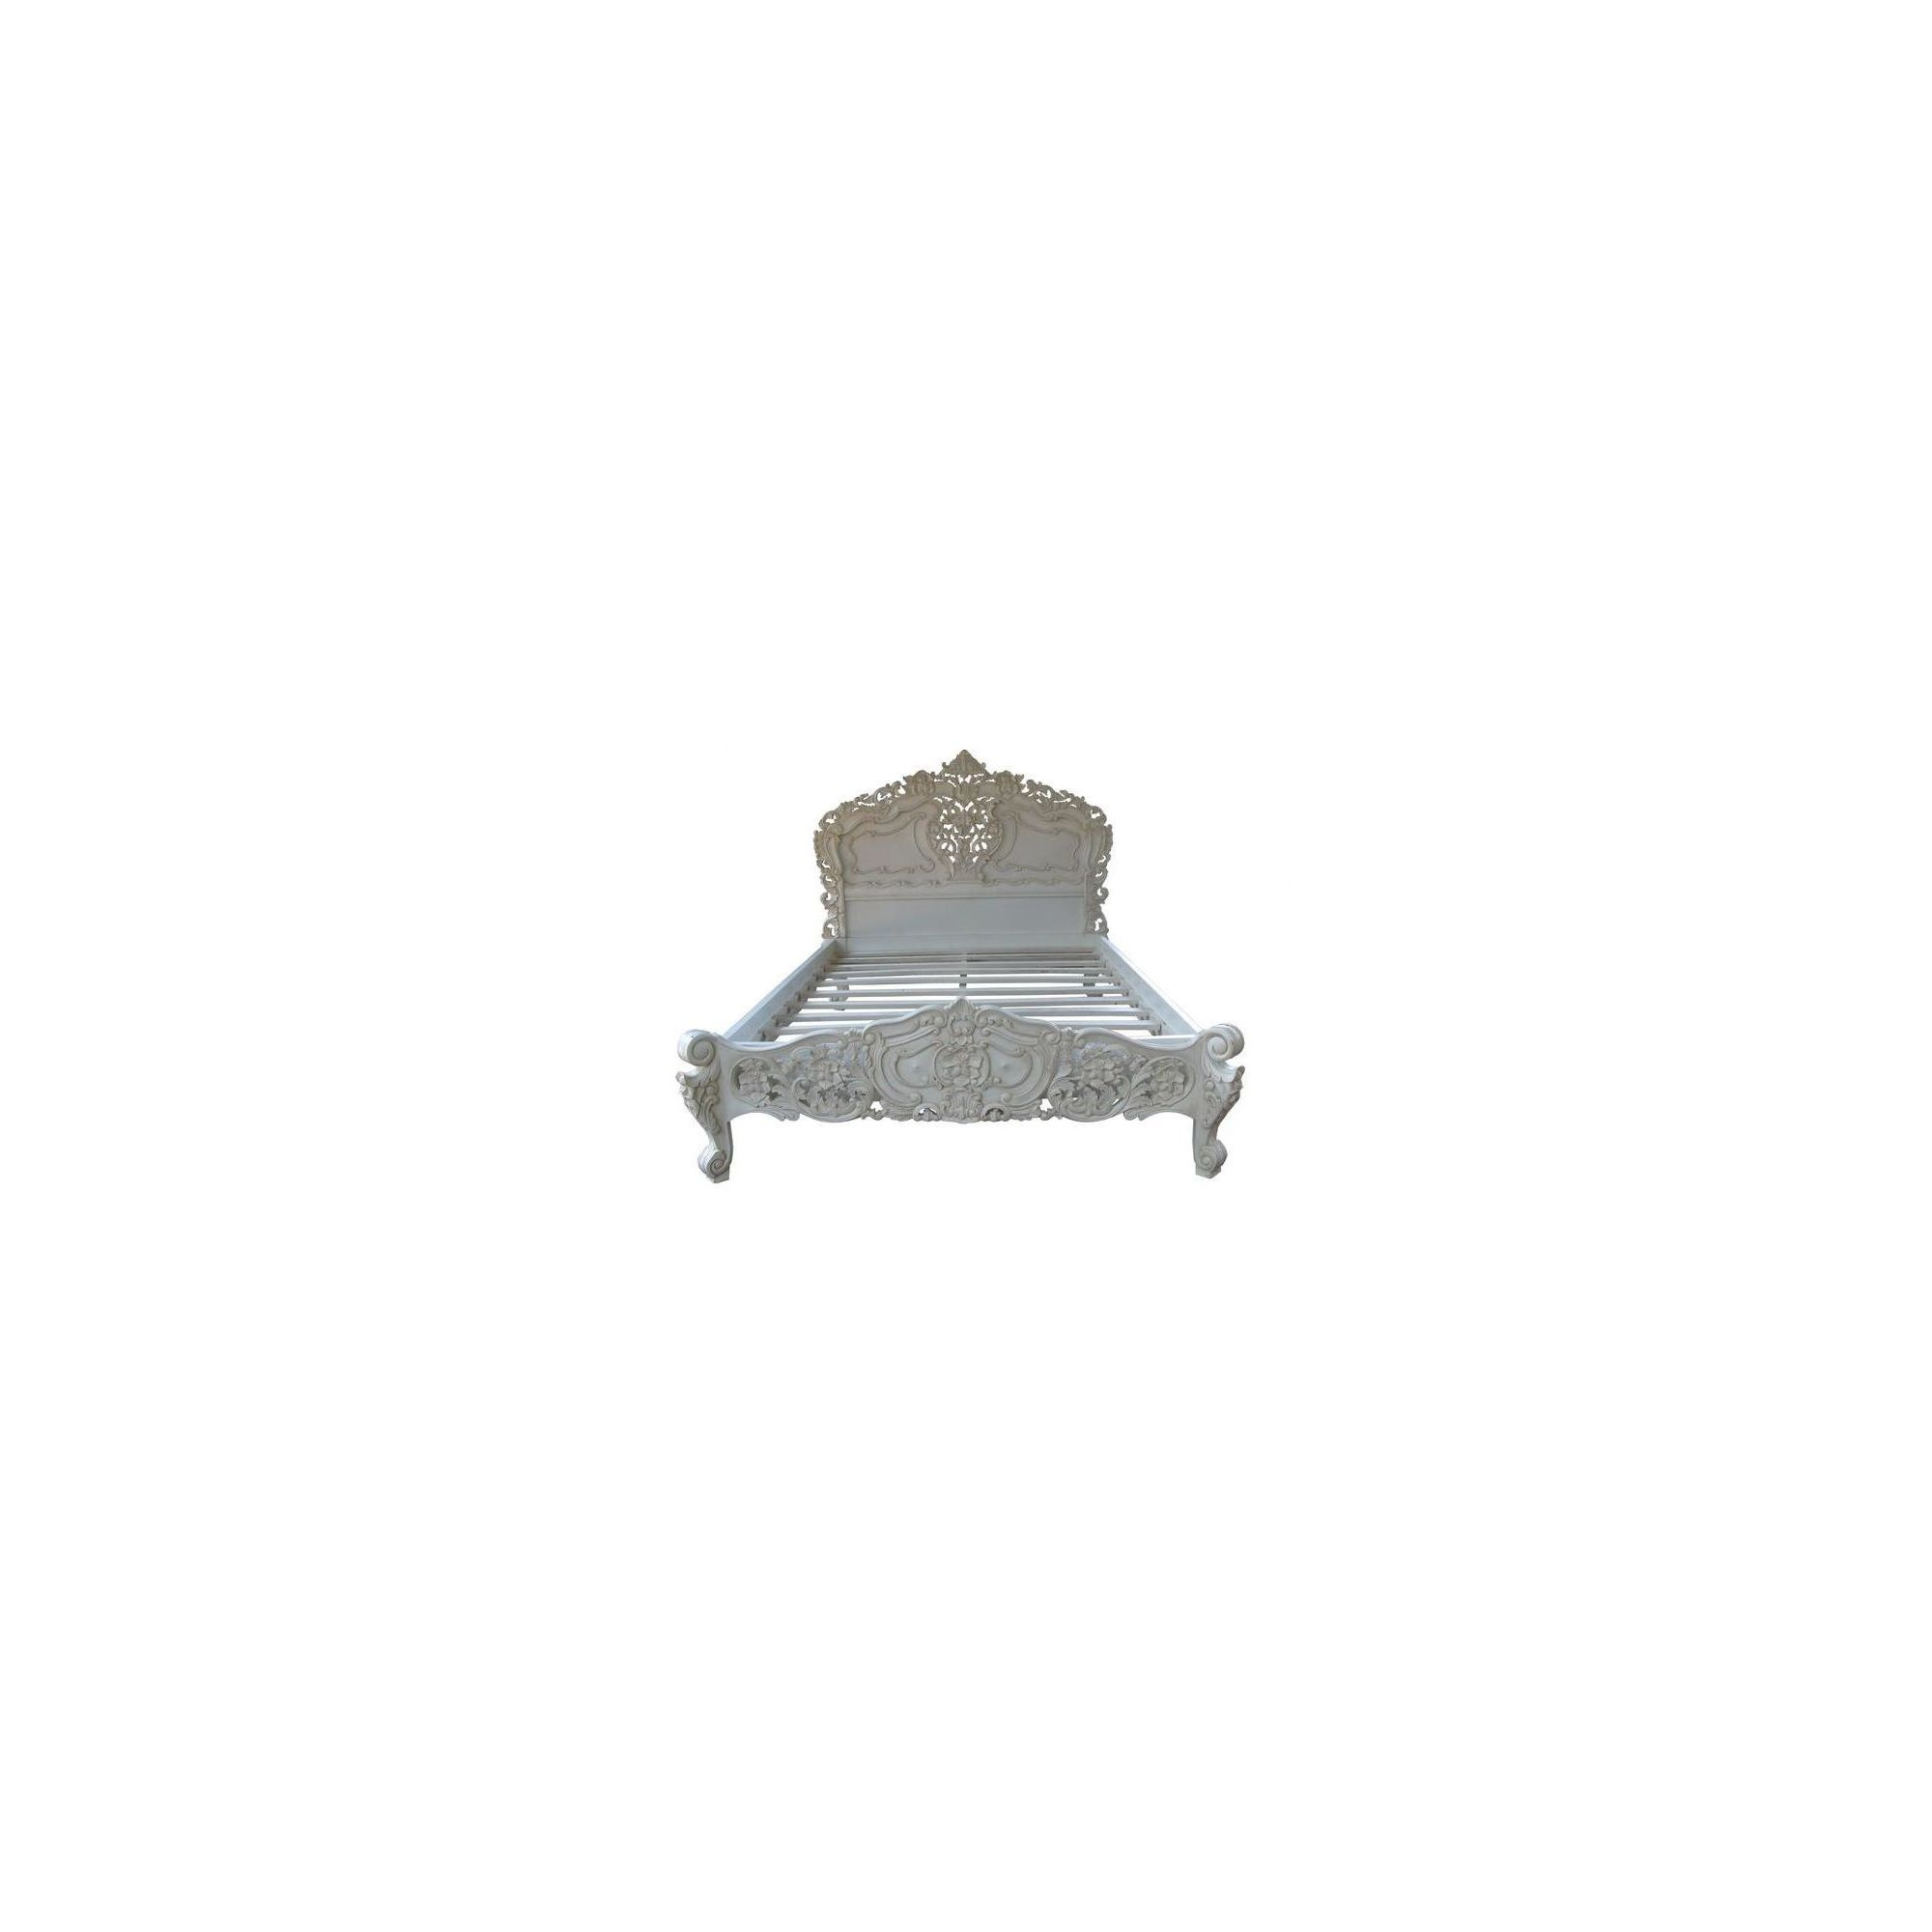 Lock stock and barrel Mahogany Carved Rococo Bed in Mahogany - Double - Antique White at Tescos Direct